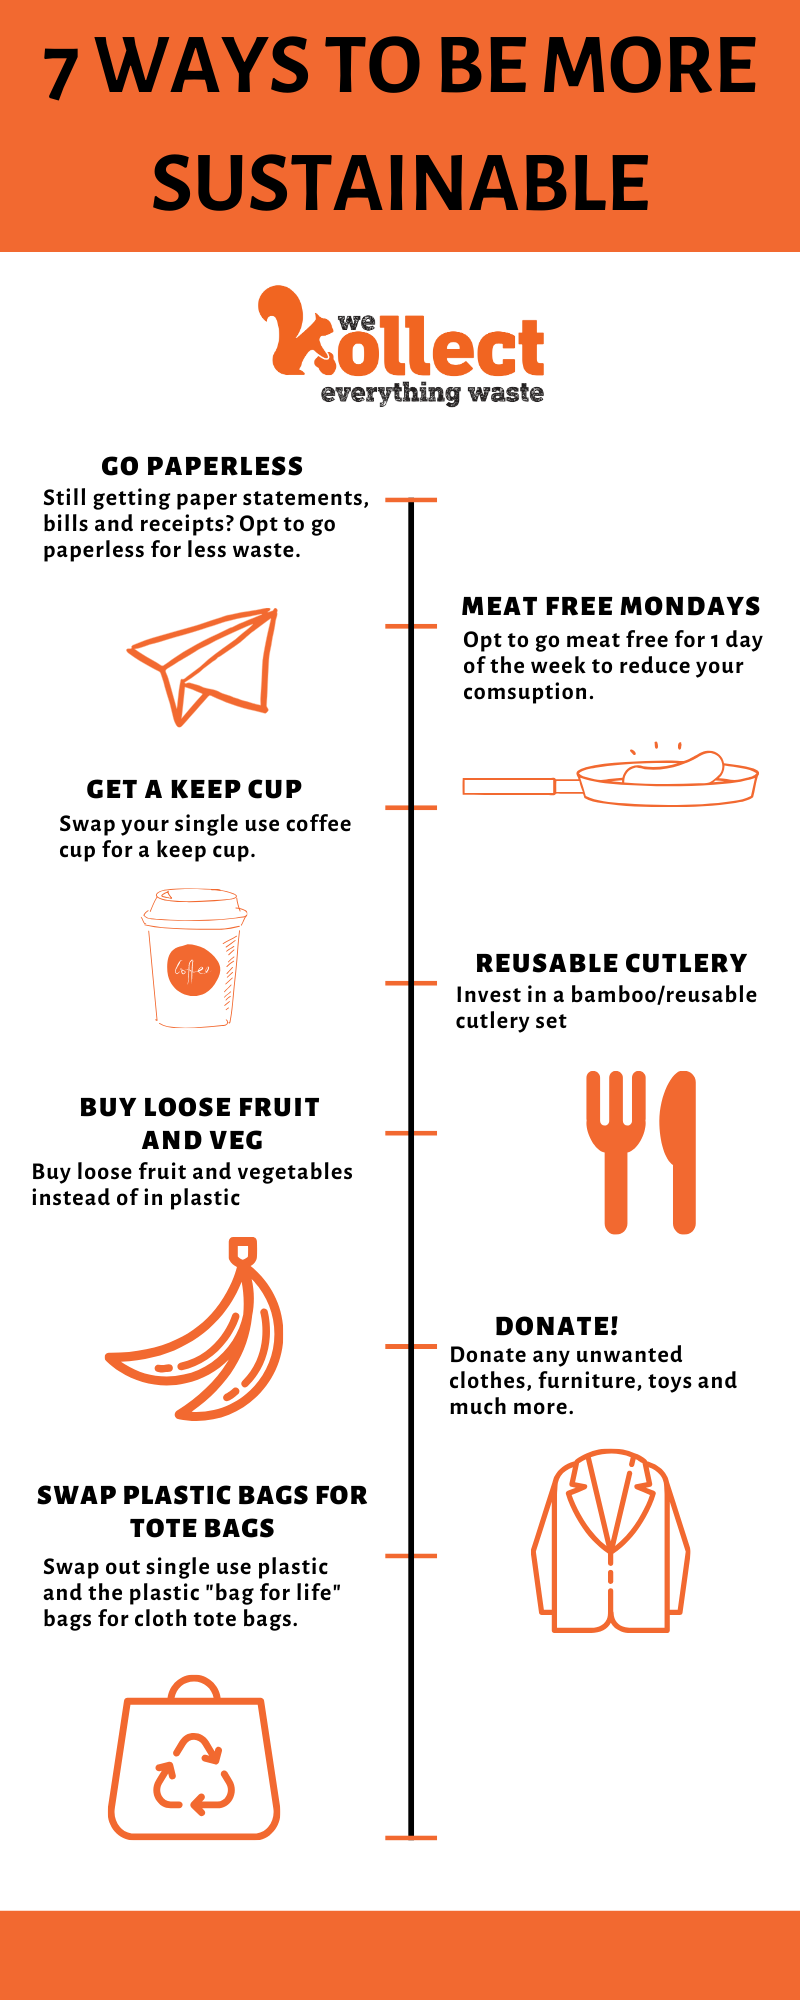 7 Ways To Be More Sustainable